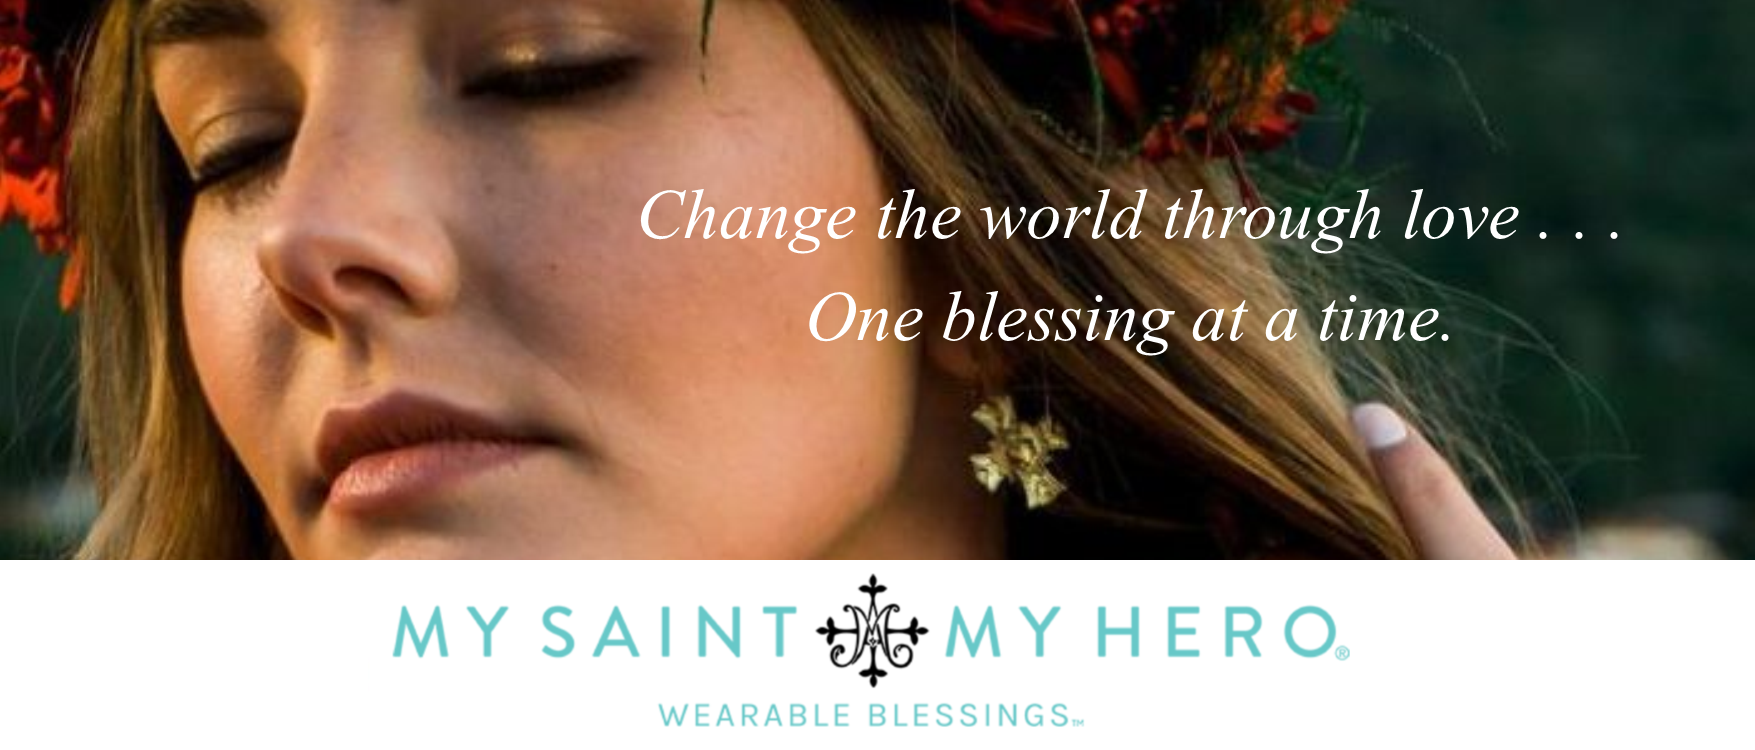 4 My Saint My Hero Jewelry - Home Page Slider